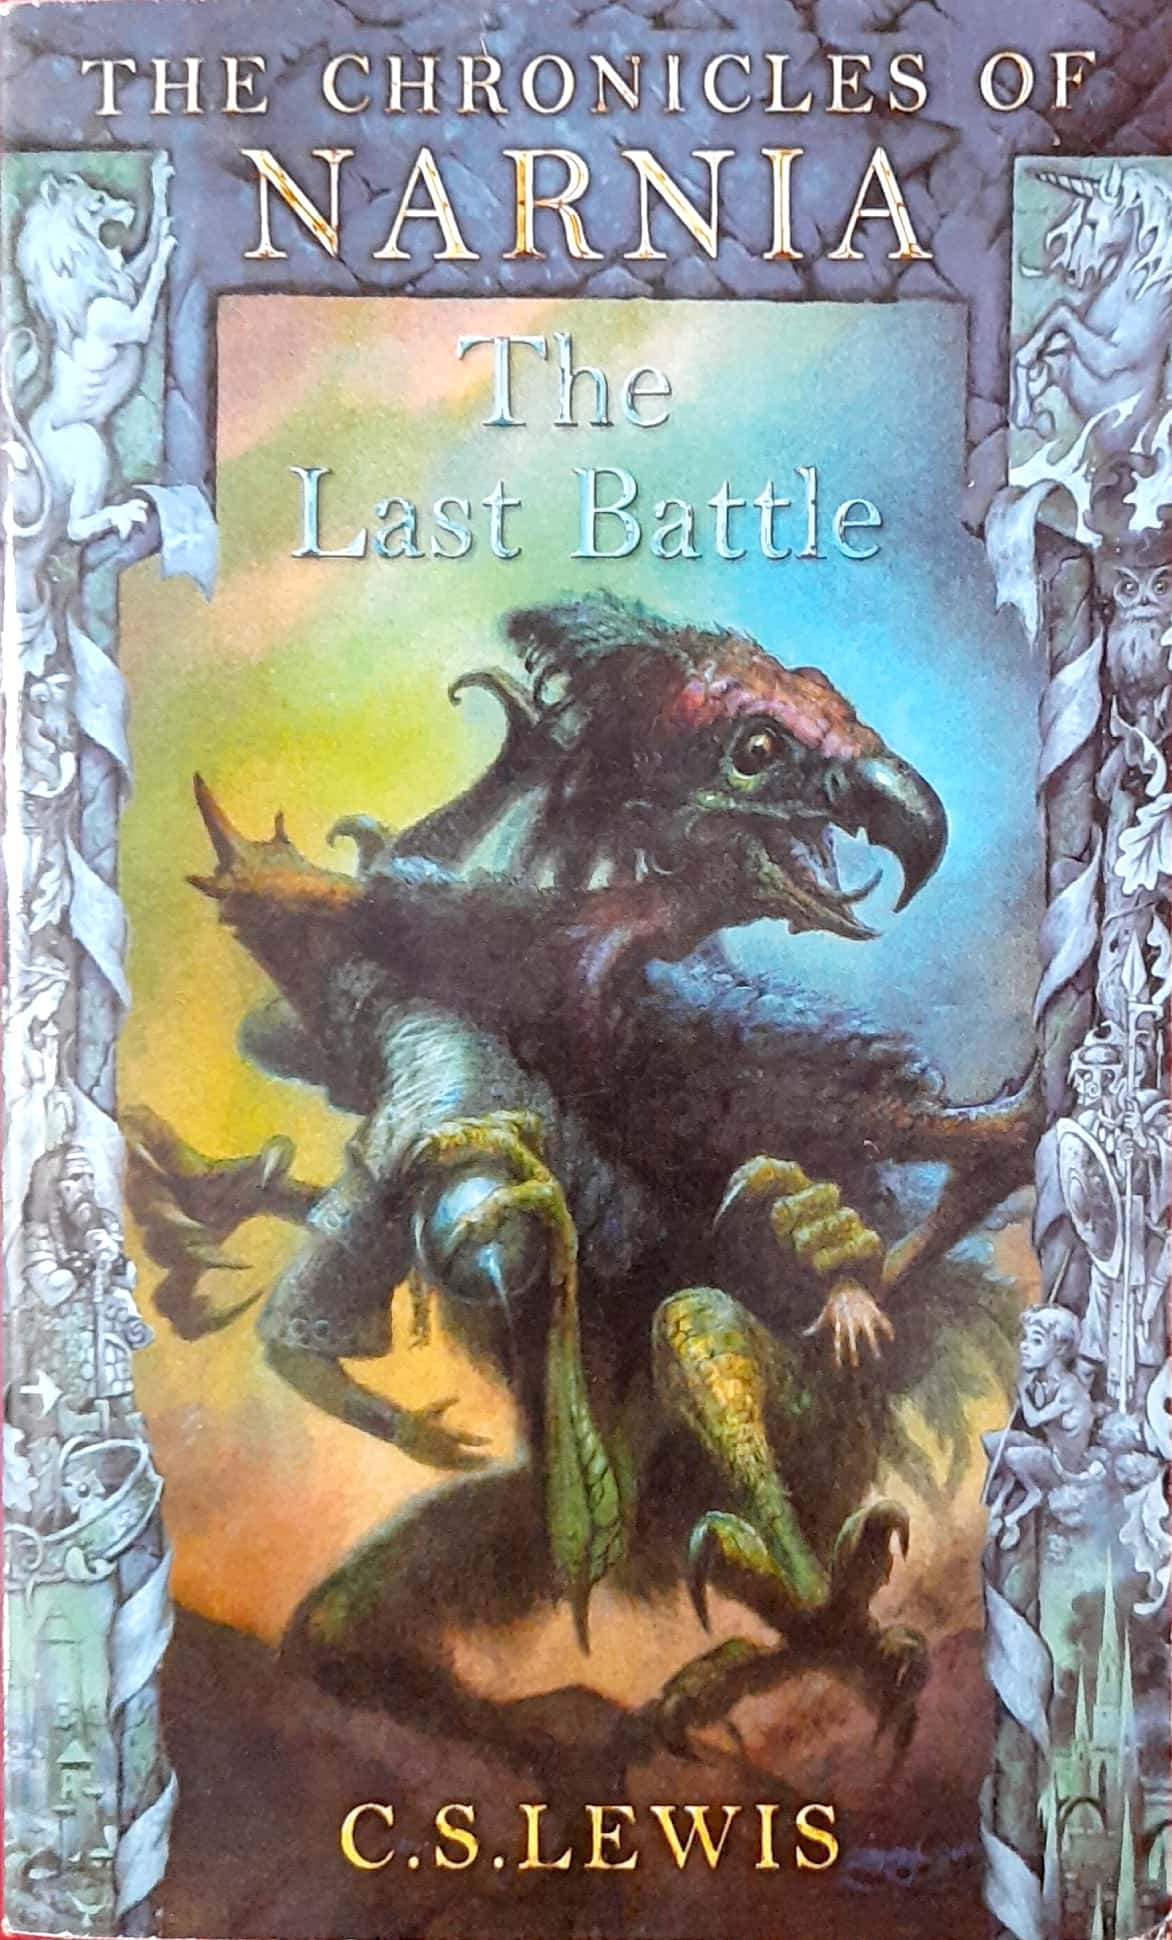 The Last Battle (The Chronicles of Narnia (Chronological Order) #7)